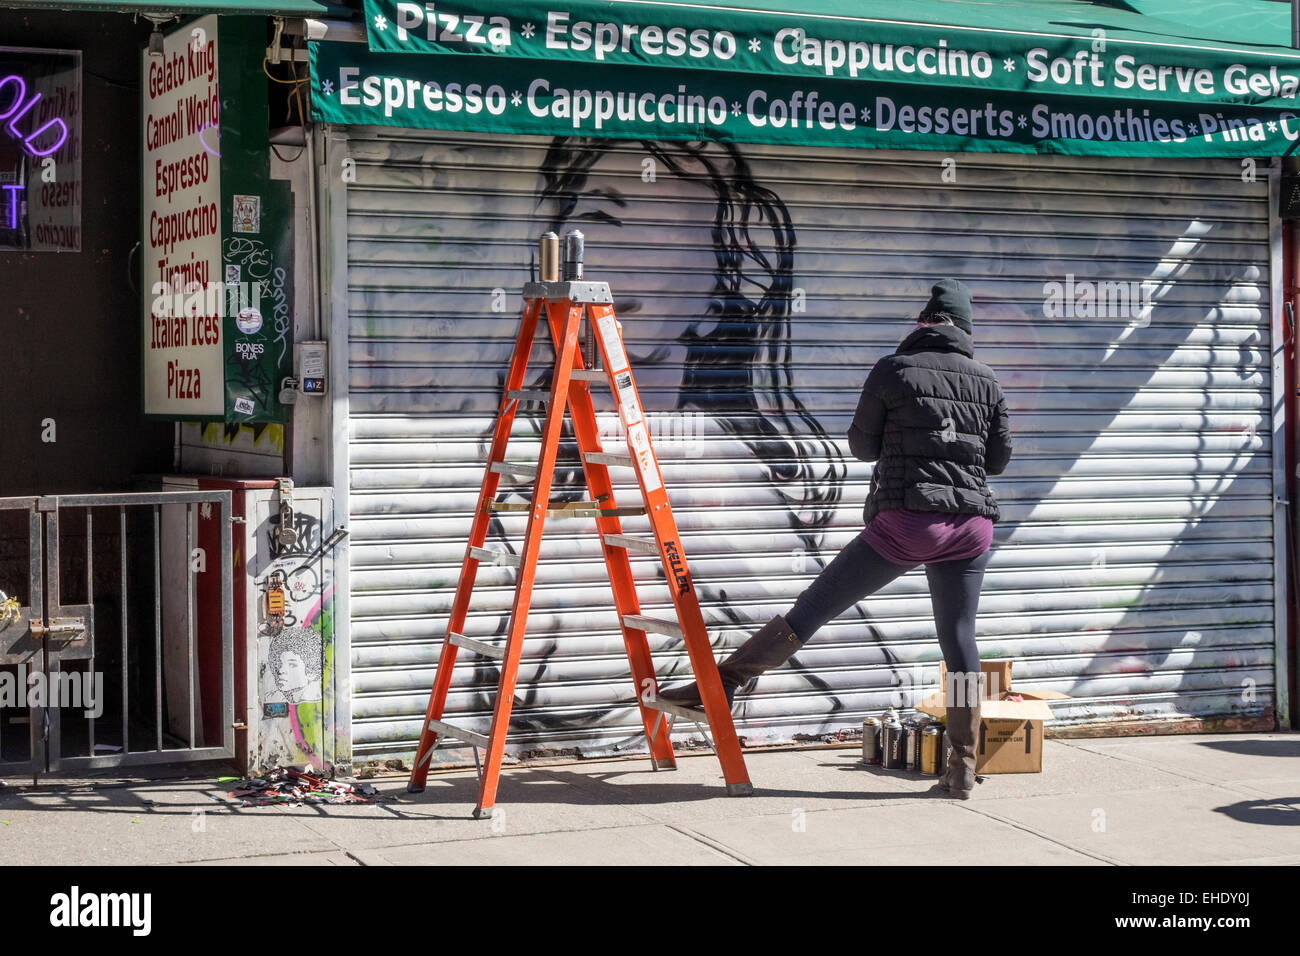 Spray paint mural artist painting a picture of a woman on a store in Little Italy in New York City - Stock Image